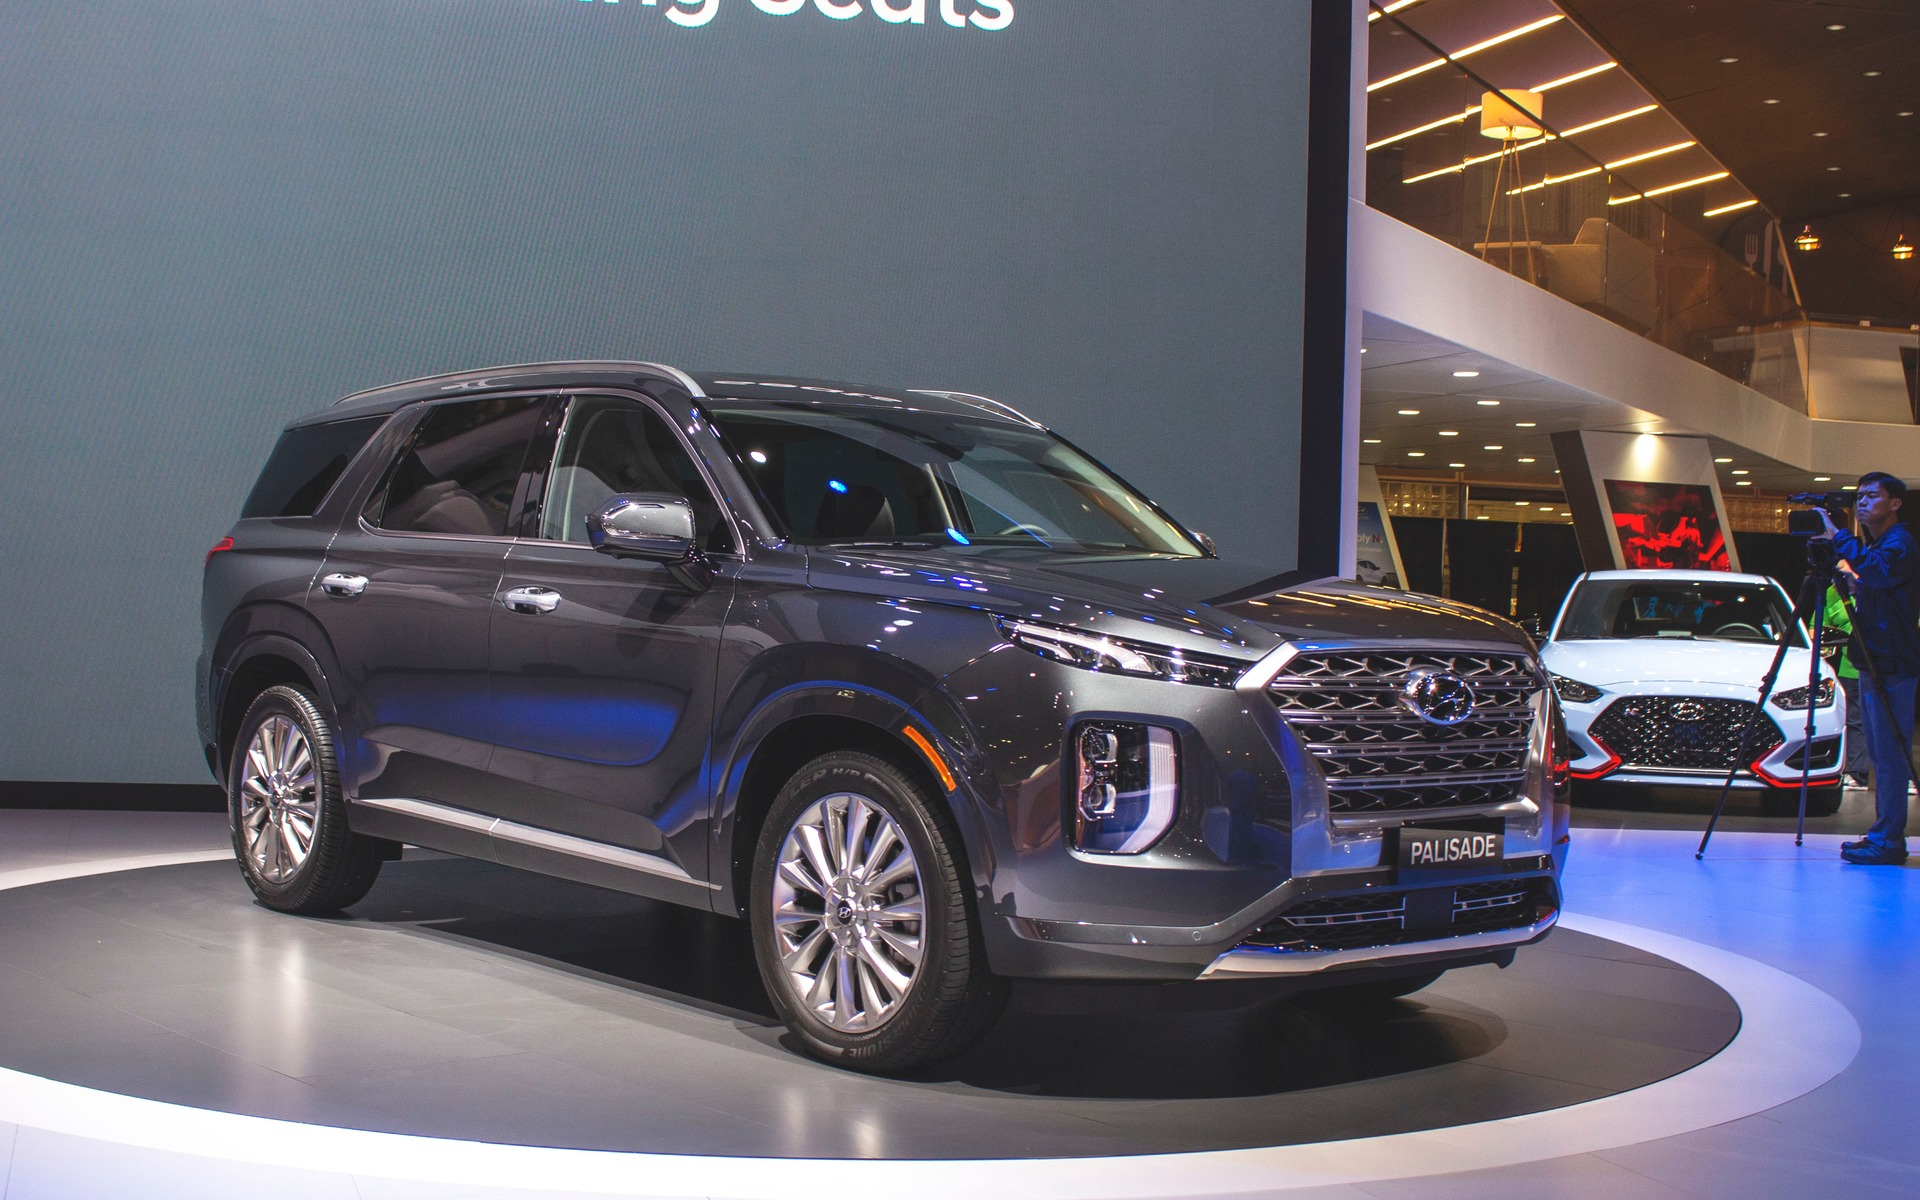 https://i.gaw.to/content/photos/35/88/358842_2020_Hyundai_Palisade.jpg